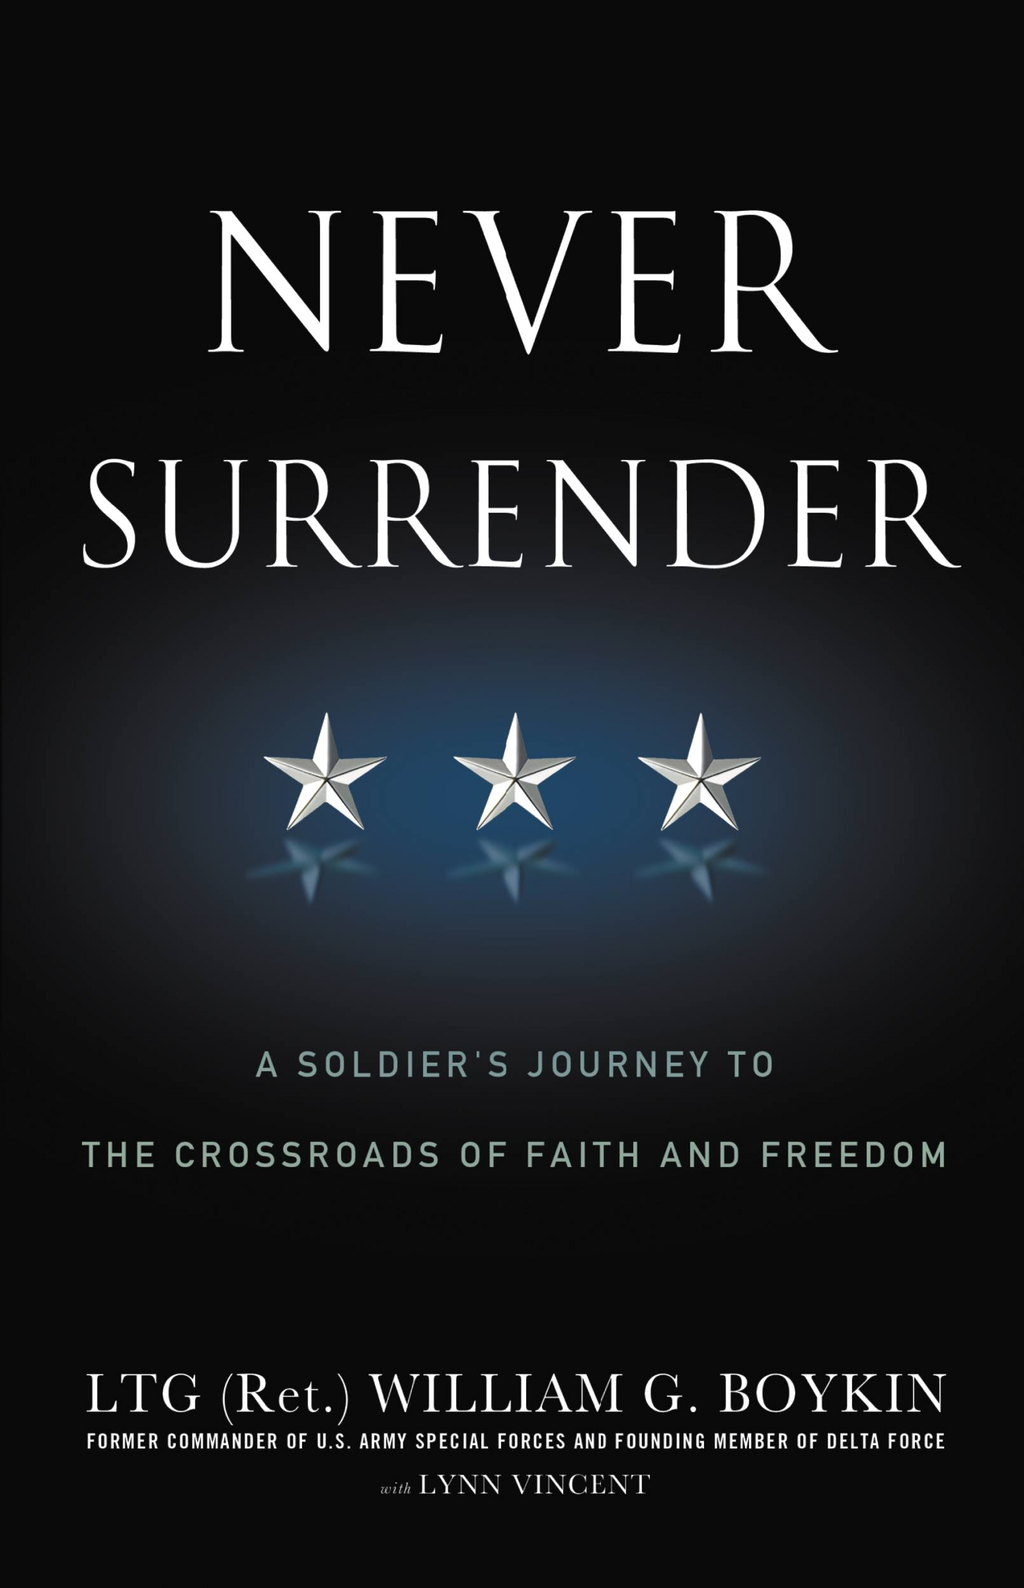 Never Surrender A Soldier's Journey to the Crossroads of Faith and Freedom